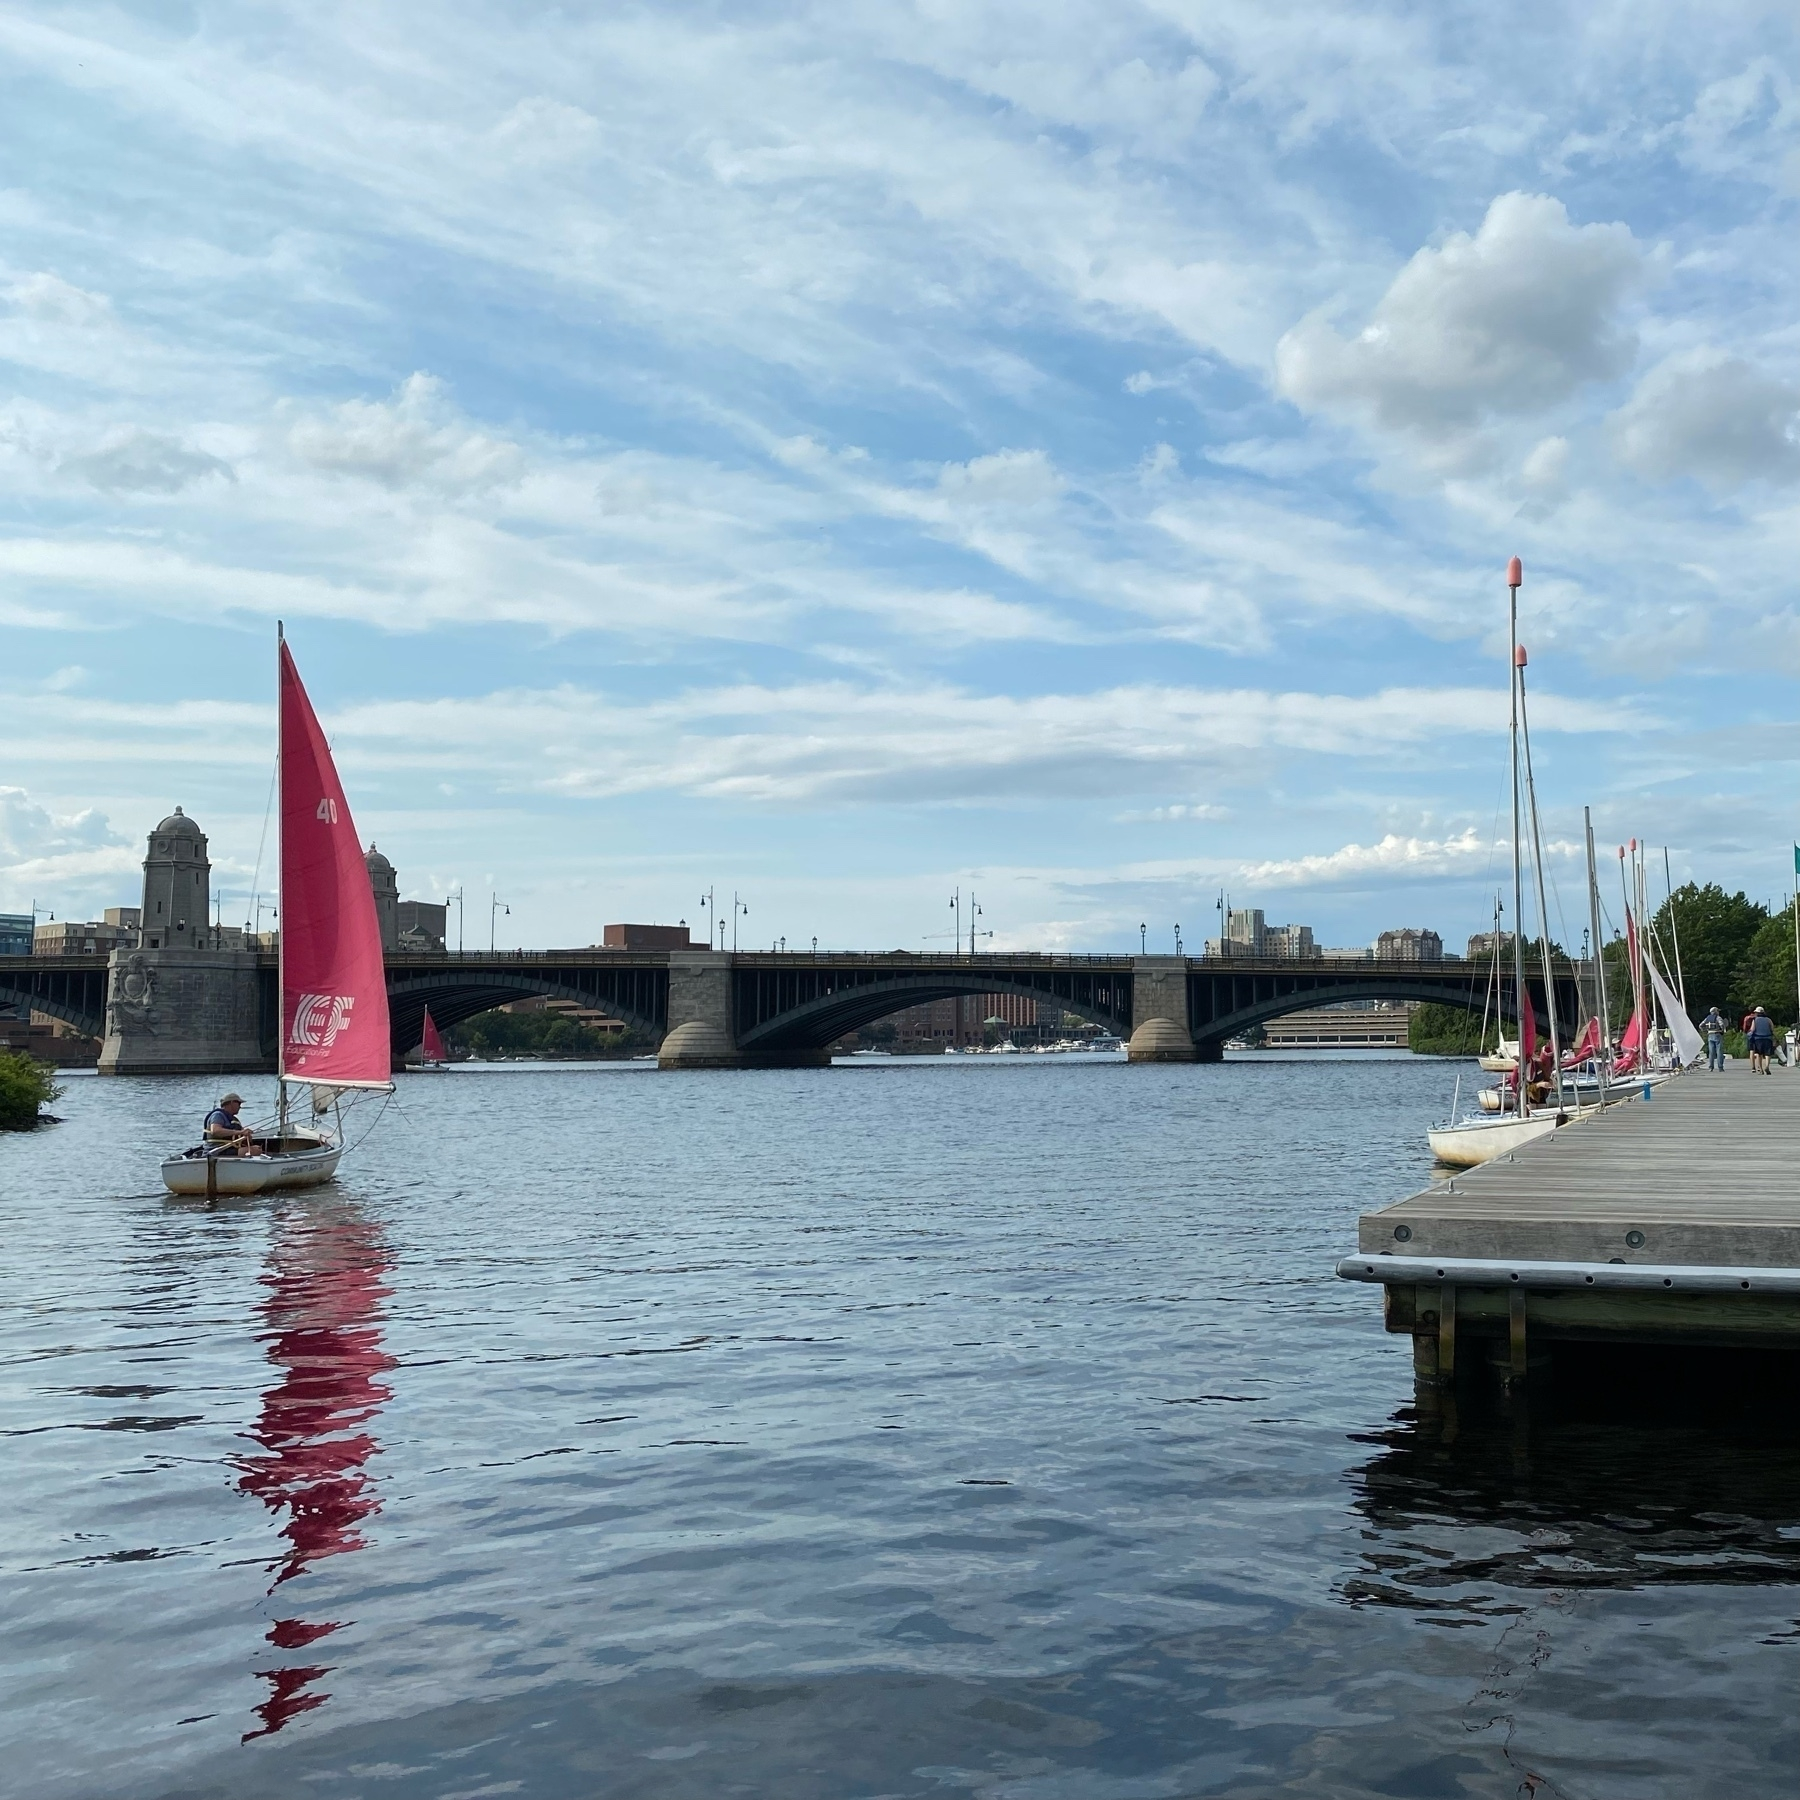 A sailboat on the Charles river with Longfellow Bridge in the background.